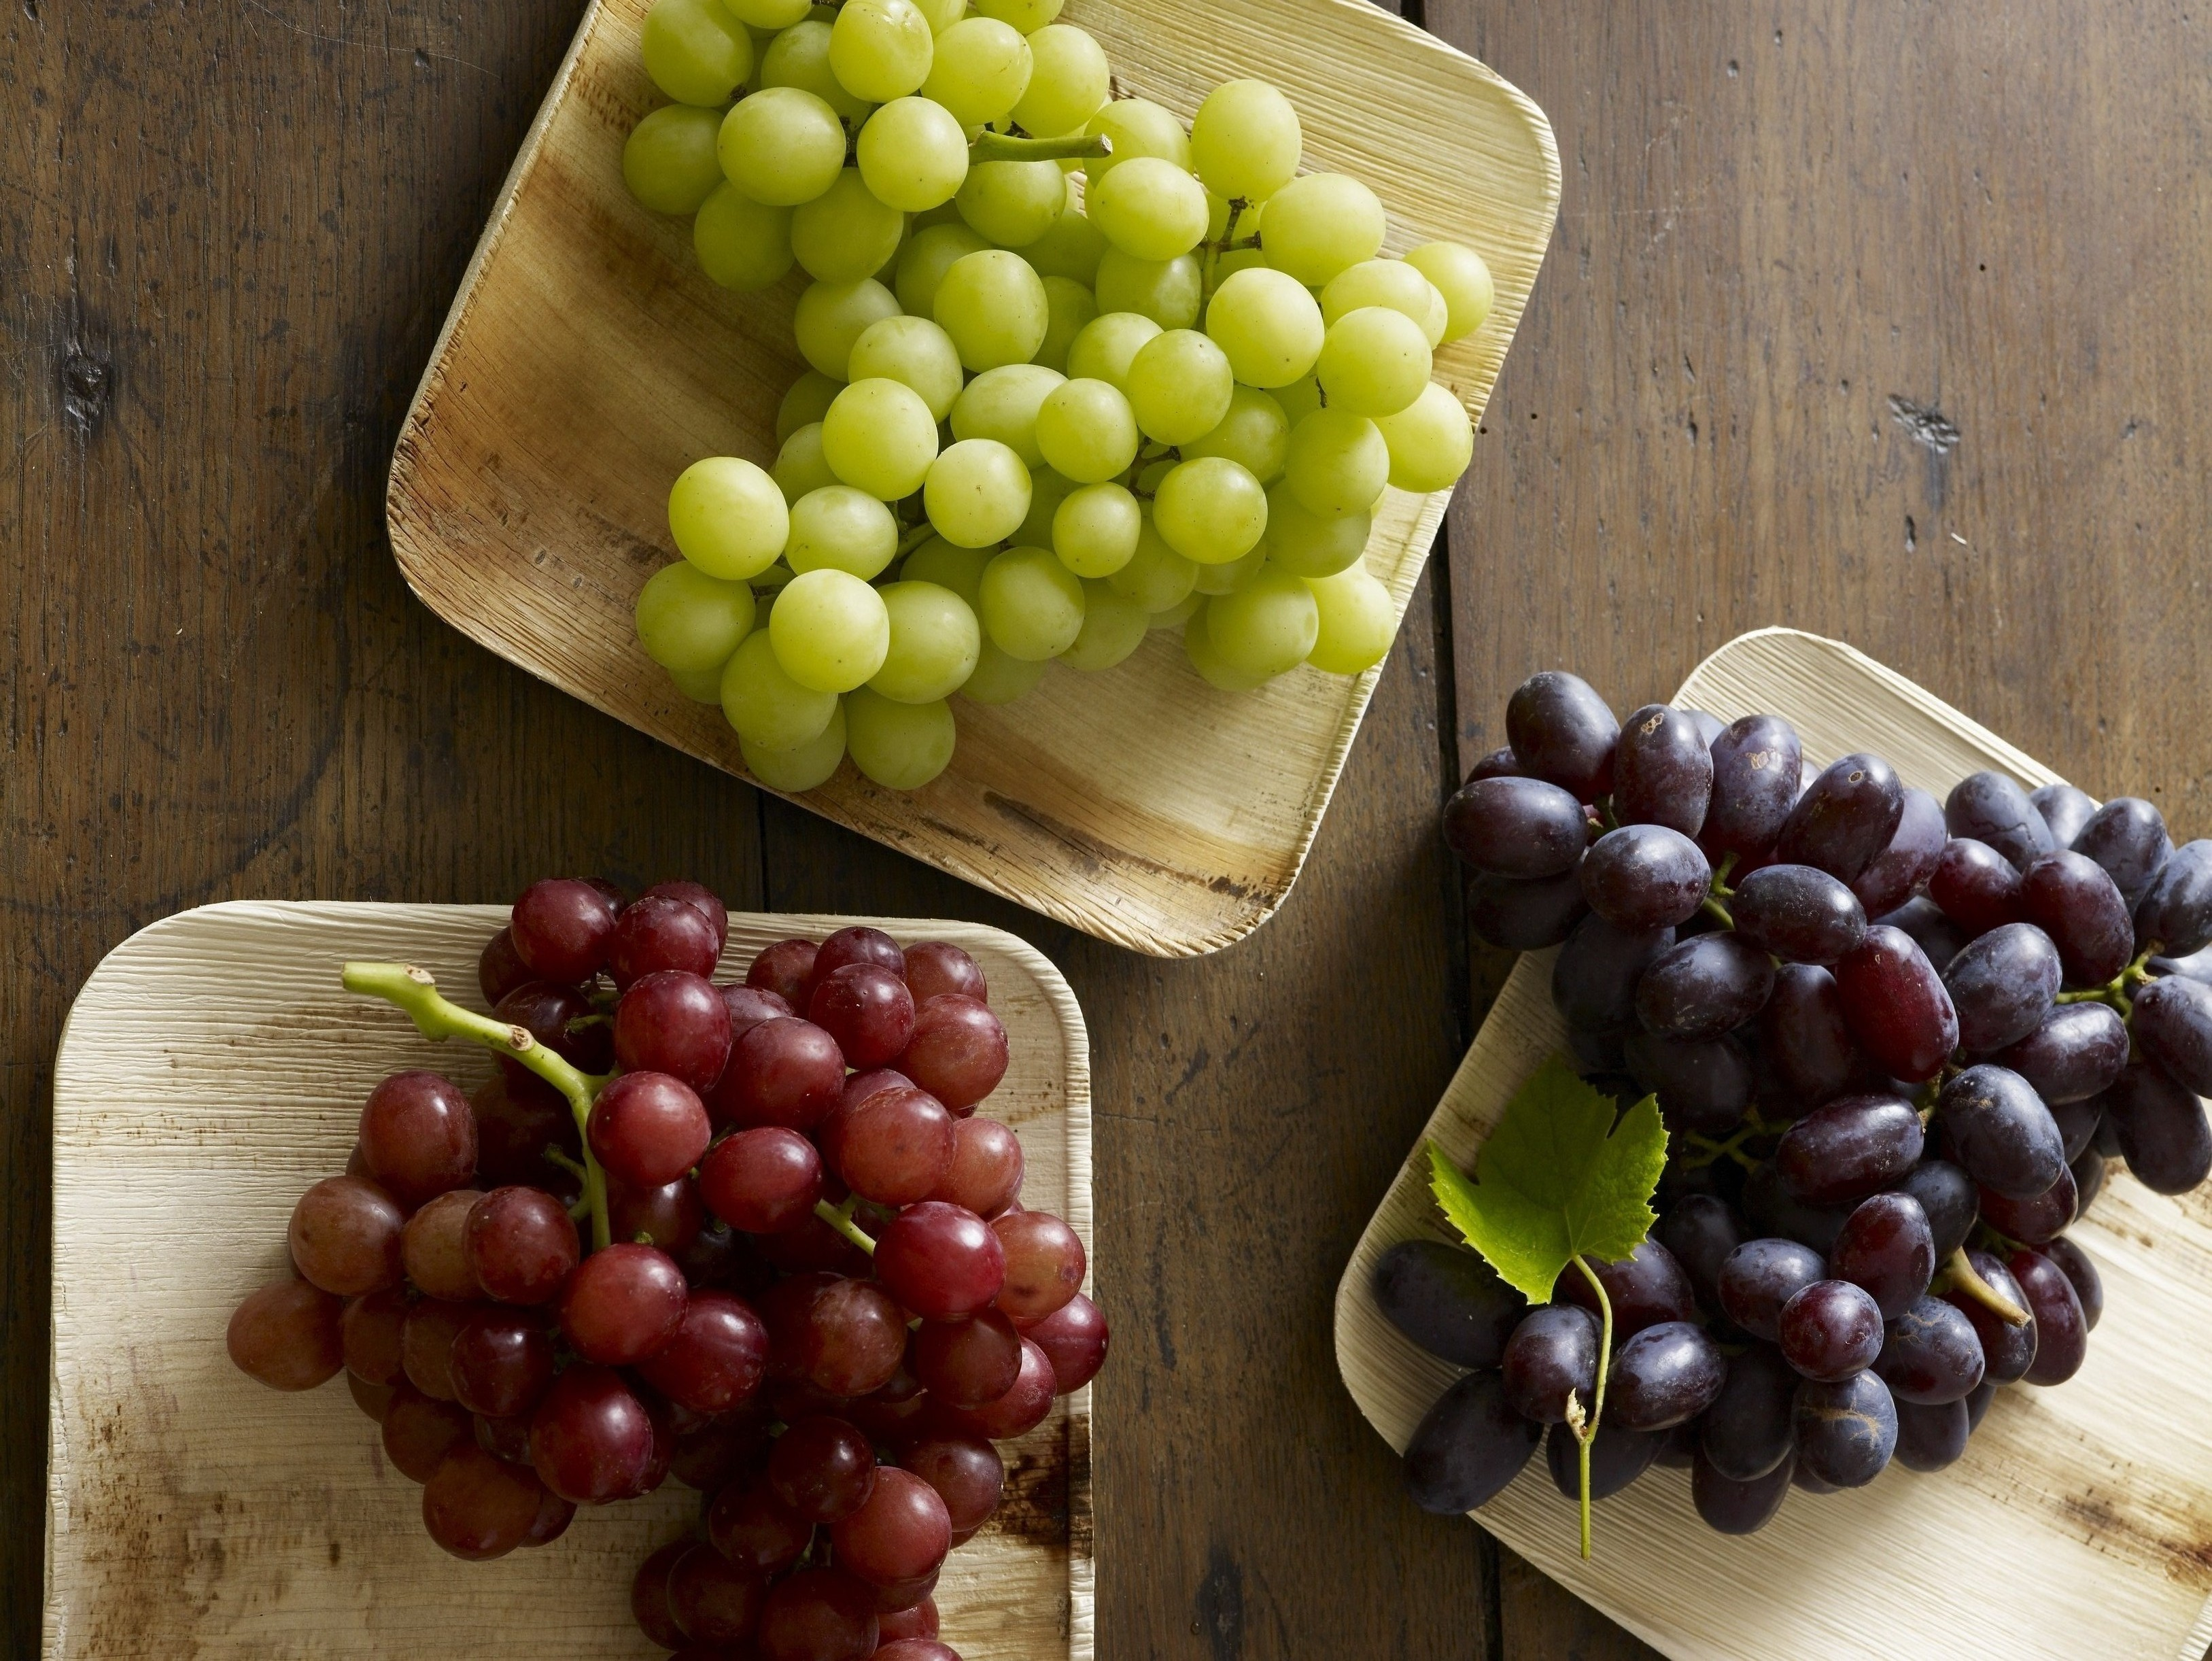 Going Back to School with Grapes from California